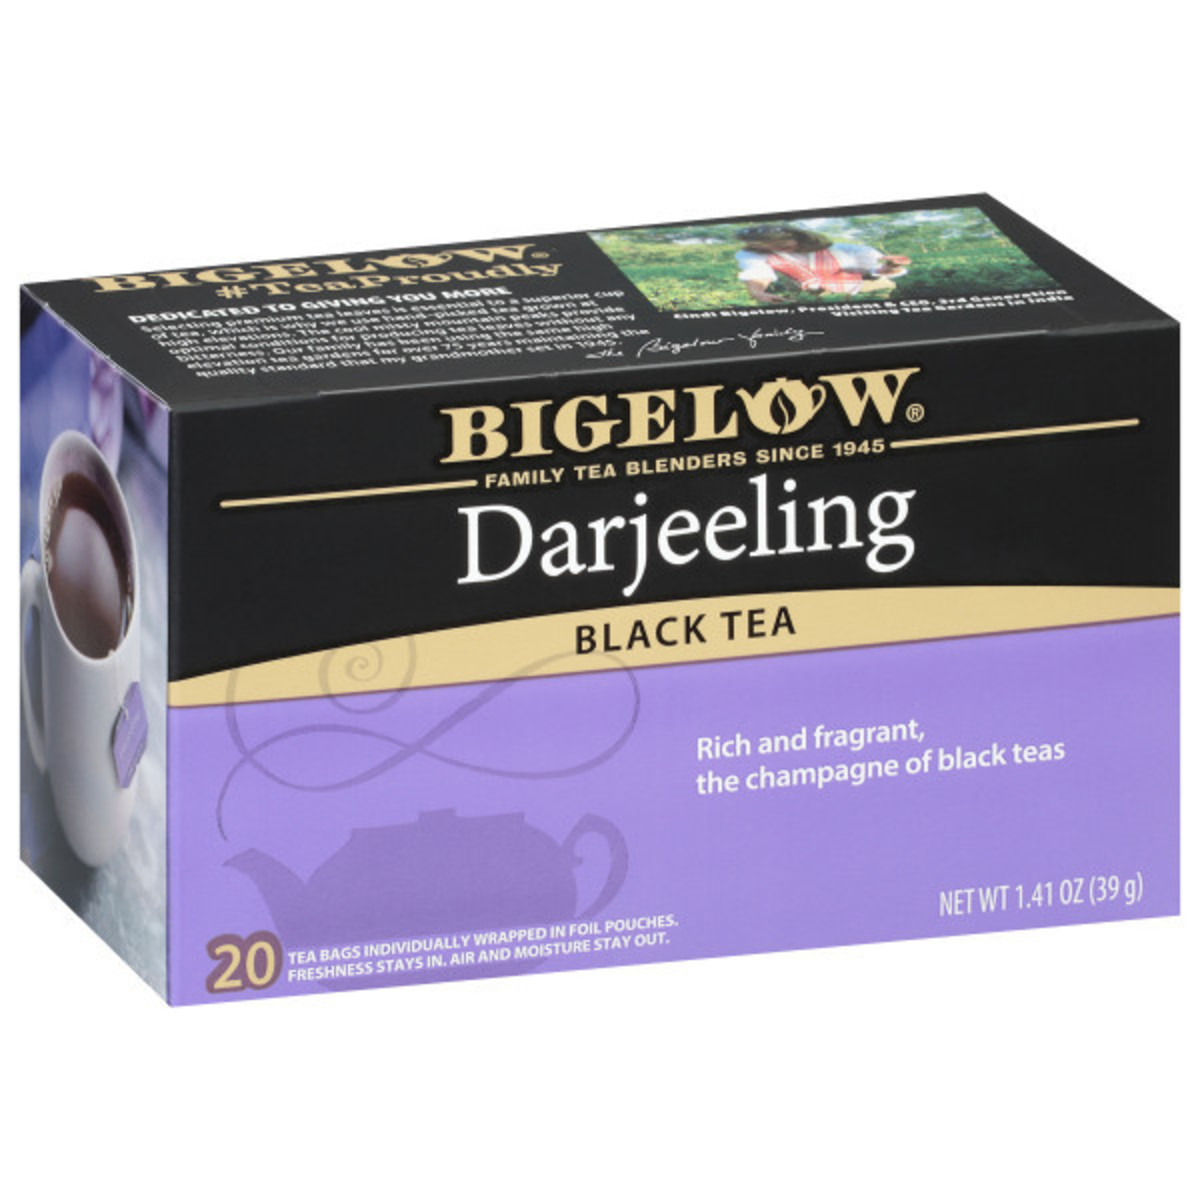 Darjeeling Tea - Case of 6 boxes- total of 120 teabags